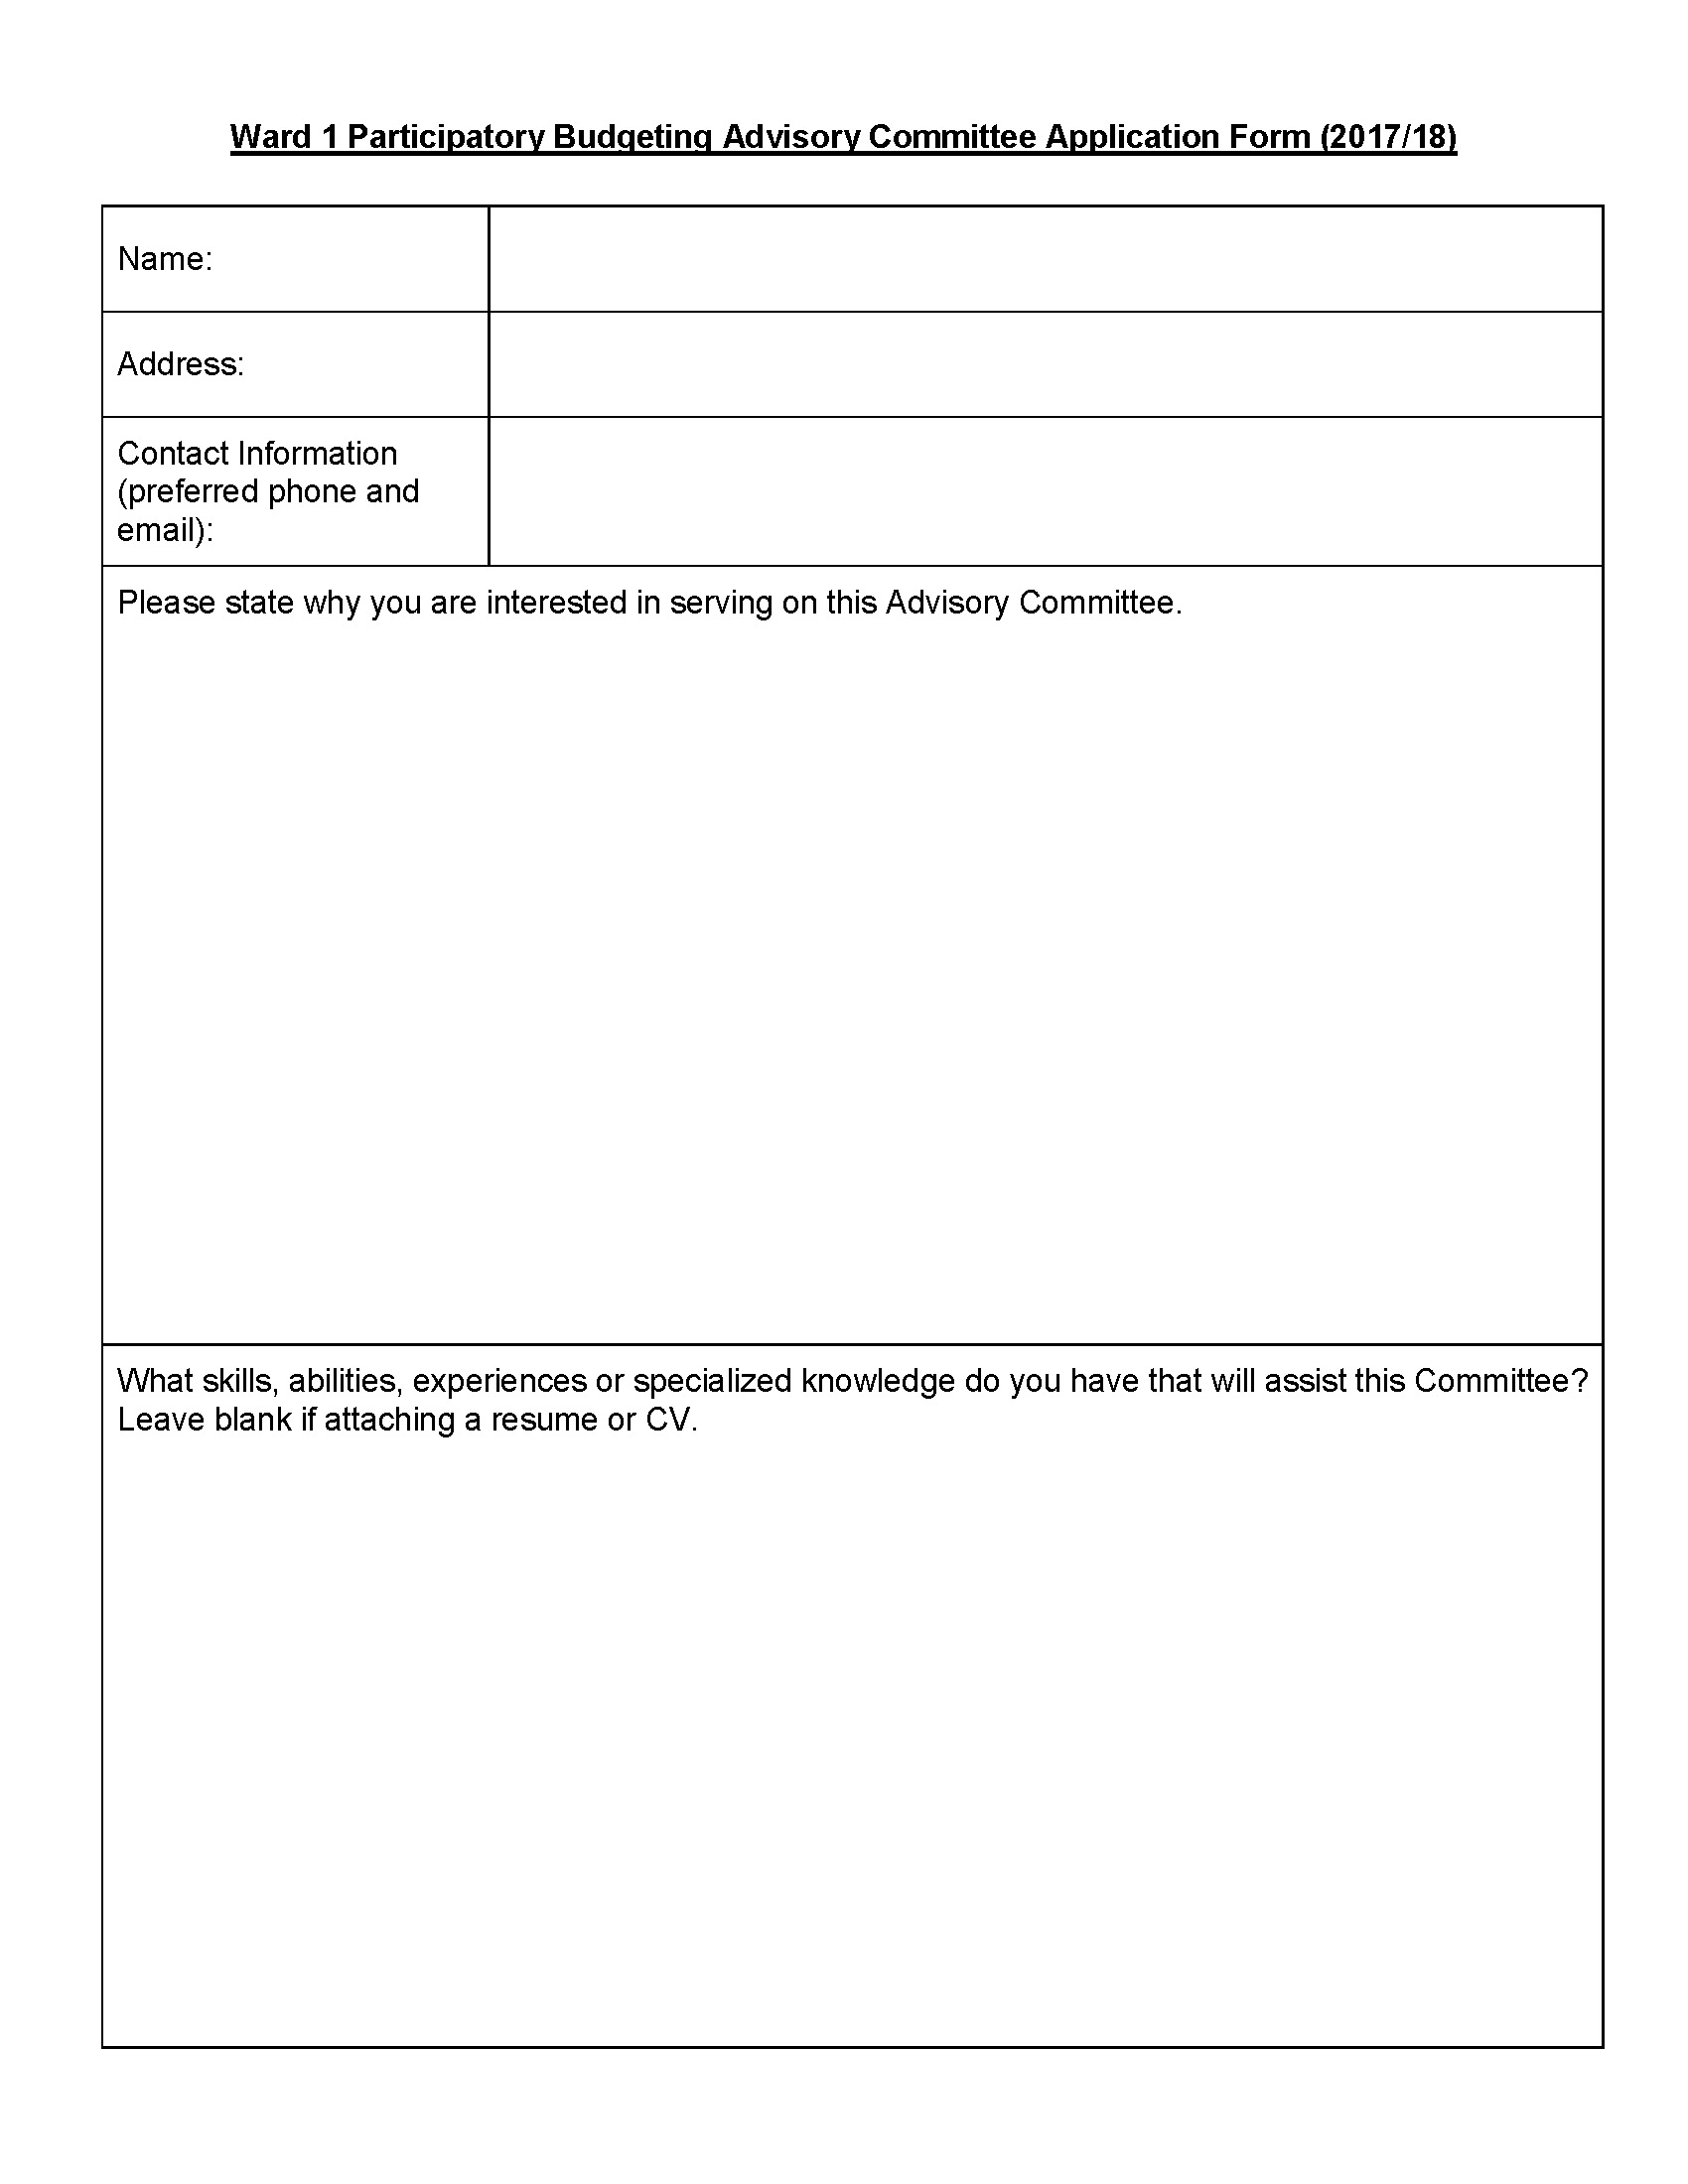 PBAC_Application_Form_2017-18_Page_1.jpg